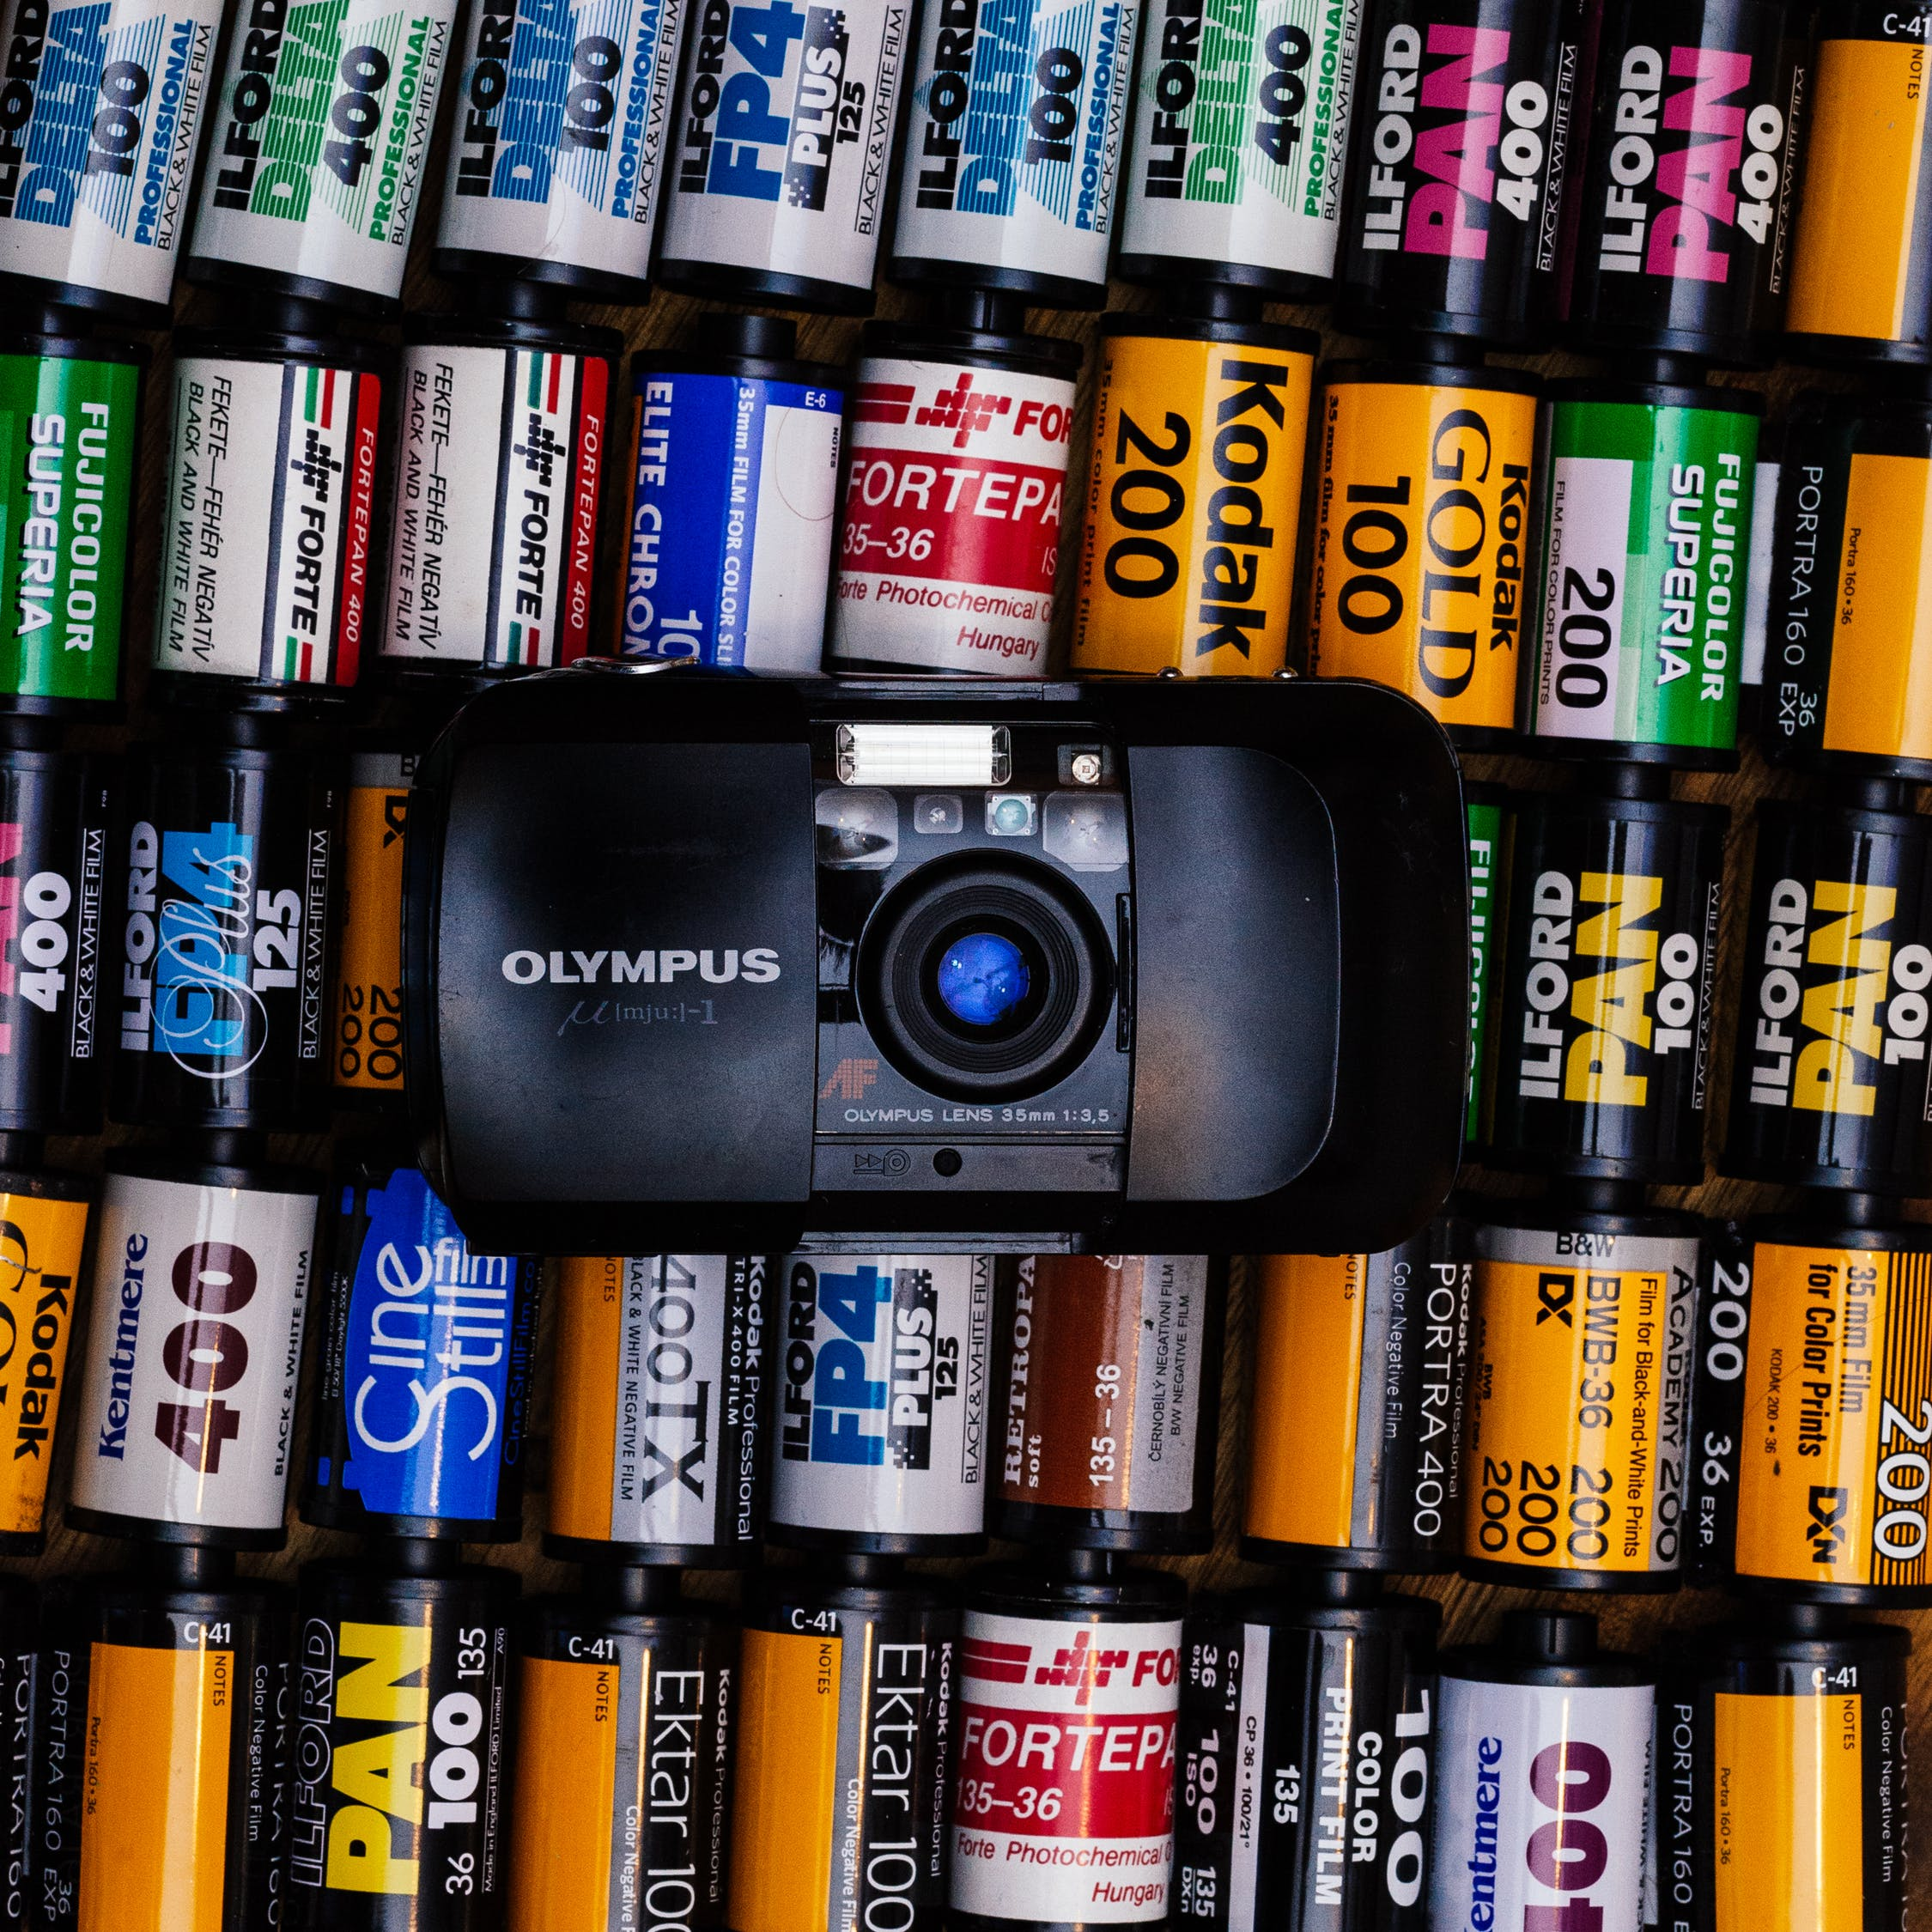 Olympus camera and film (Pic: Balajzs Benjamin/Pexels)